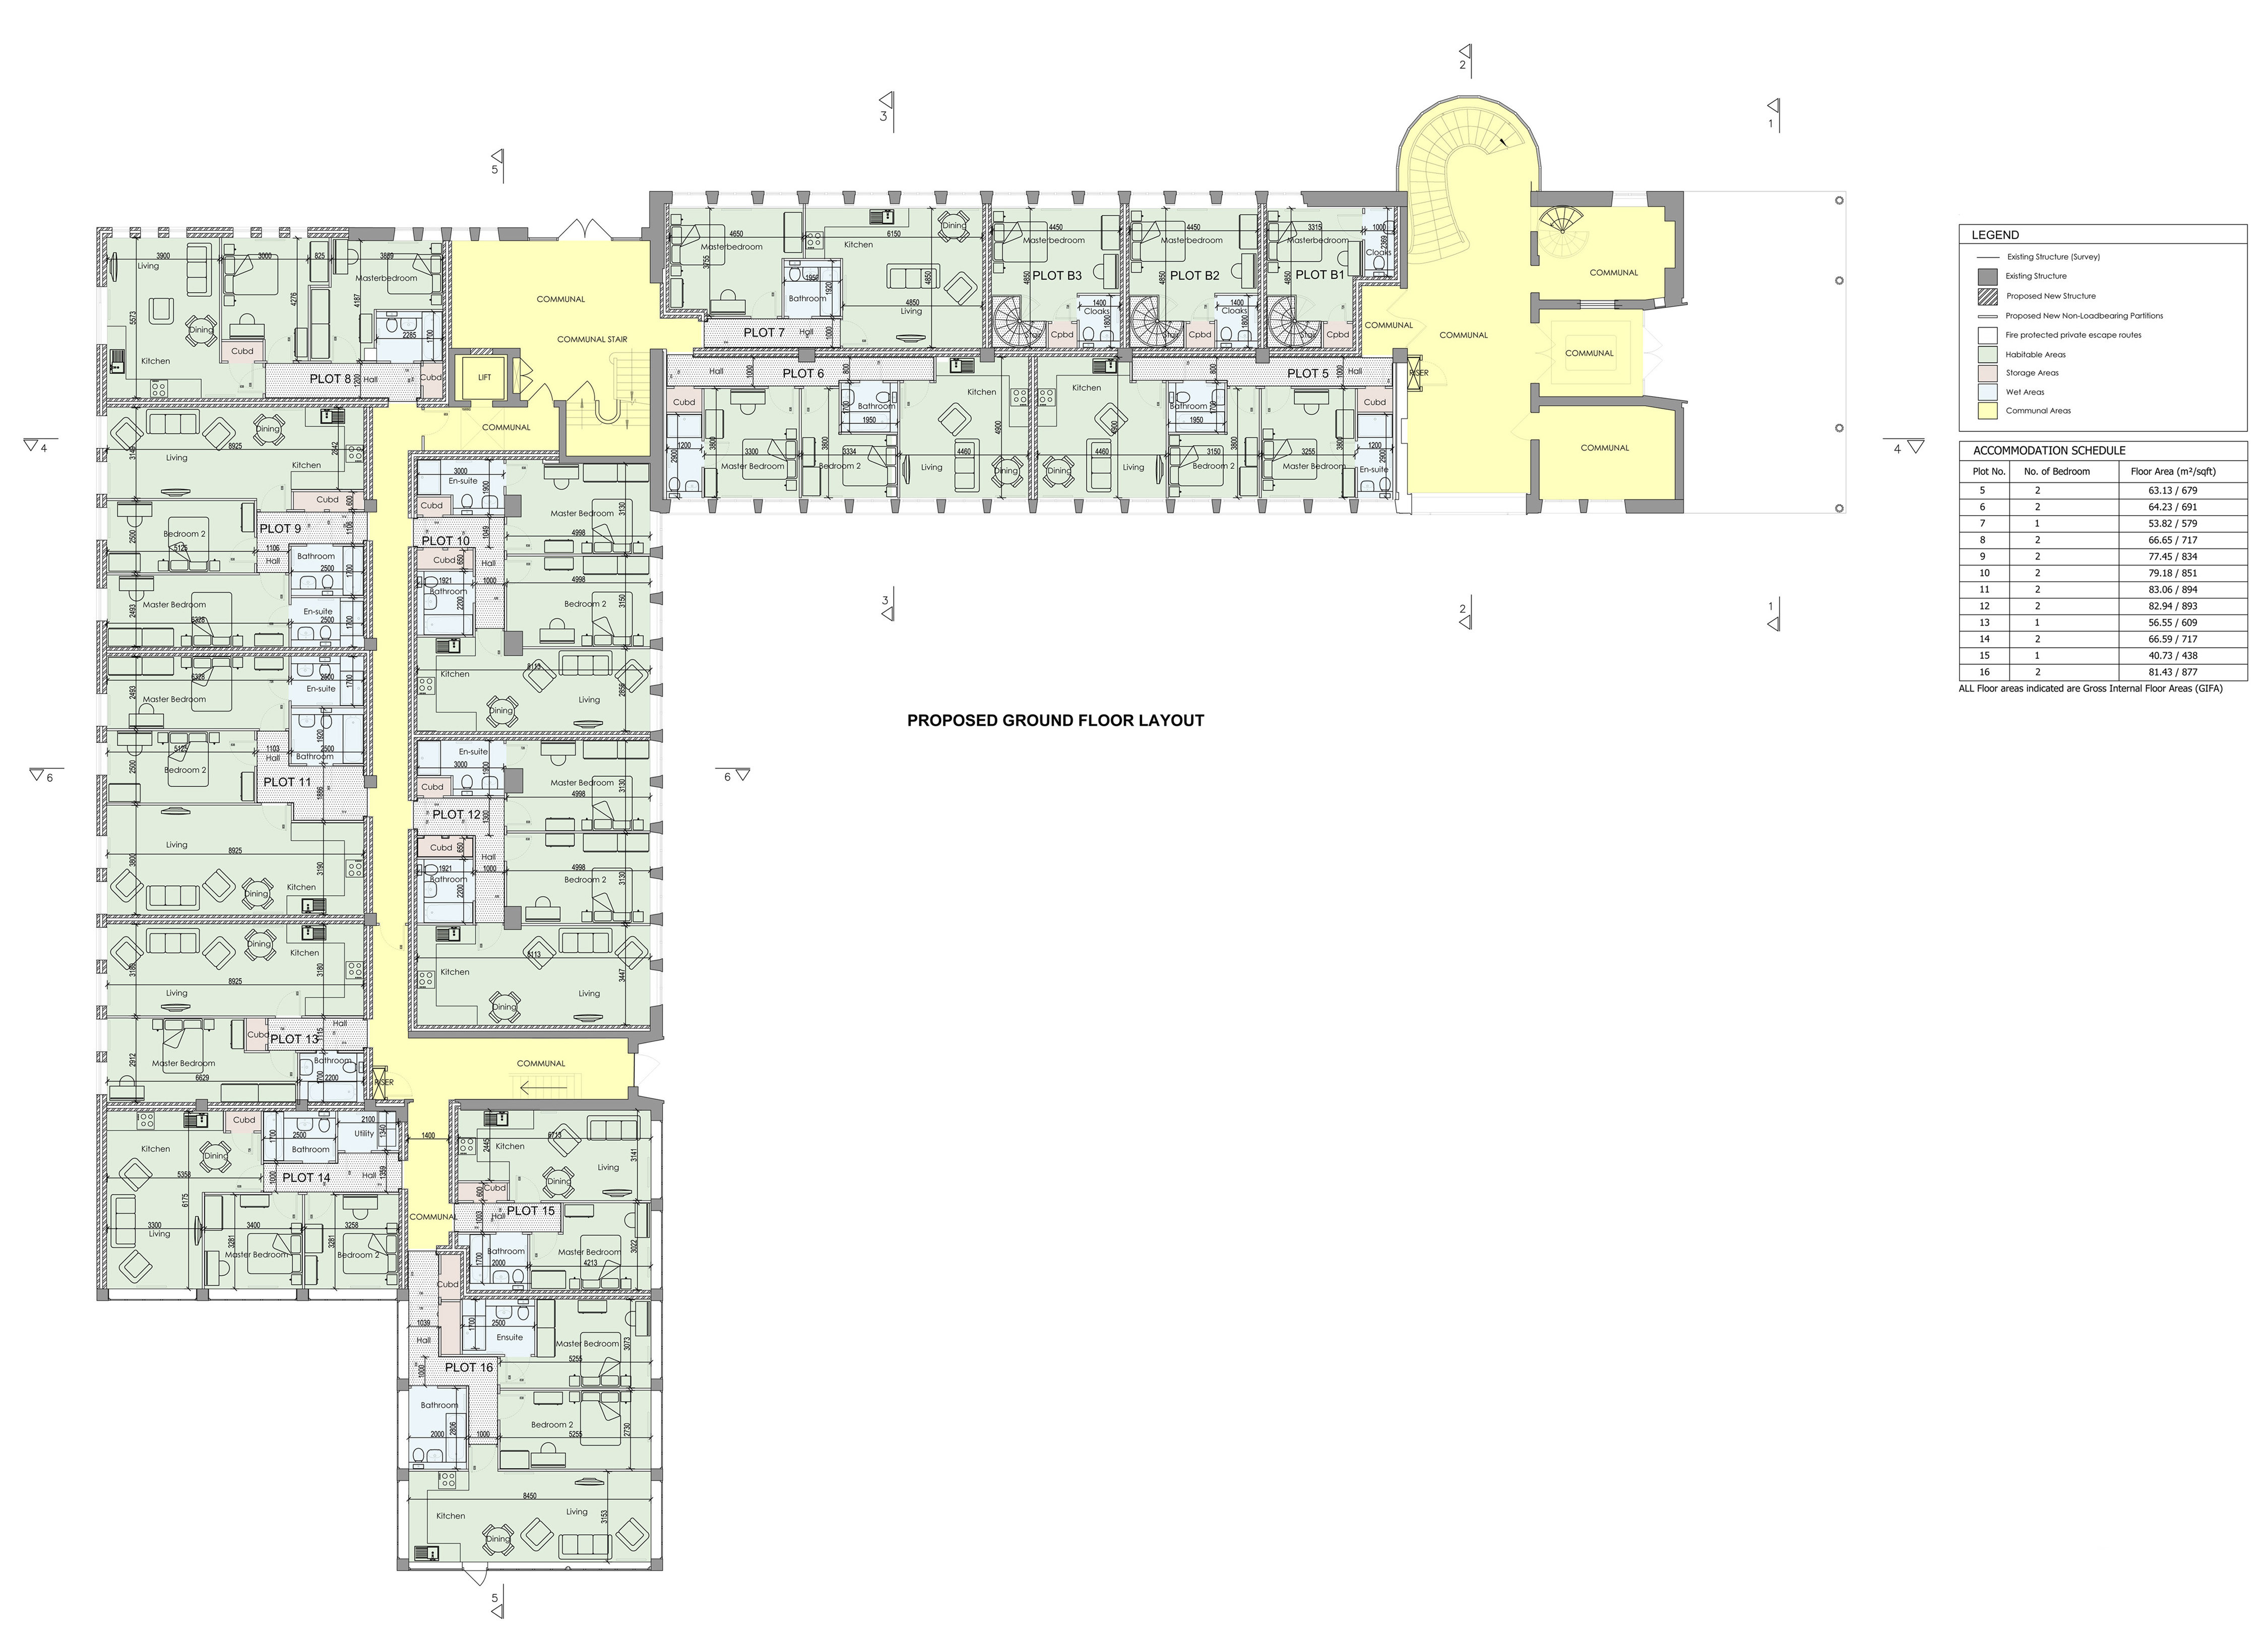 Proposed Ground Floor Layout 11